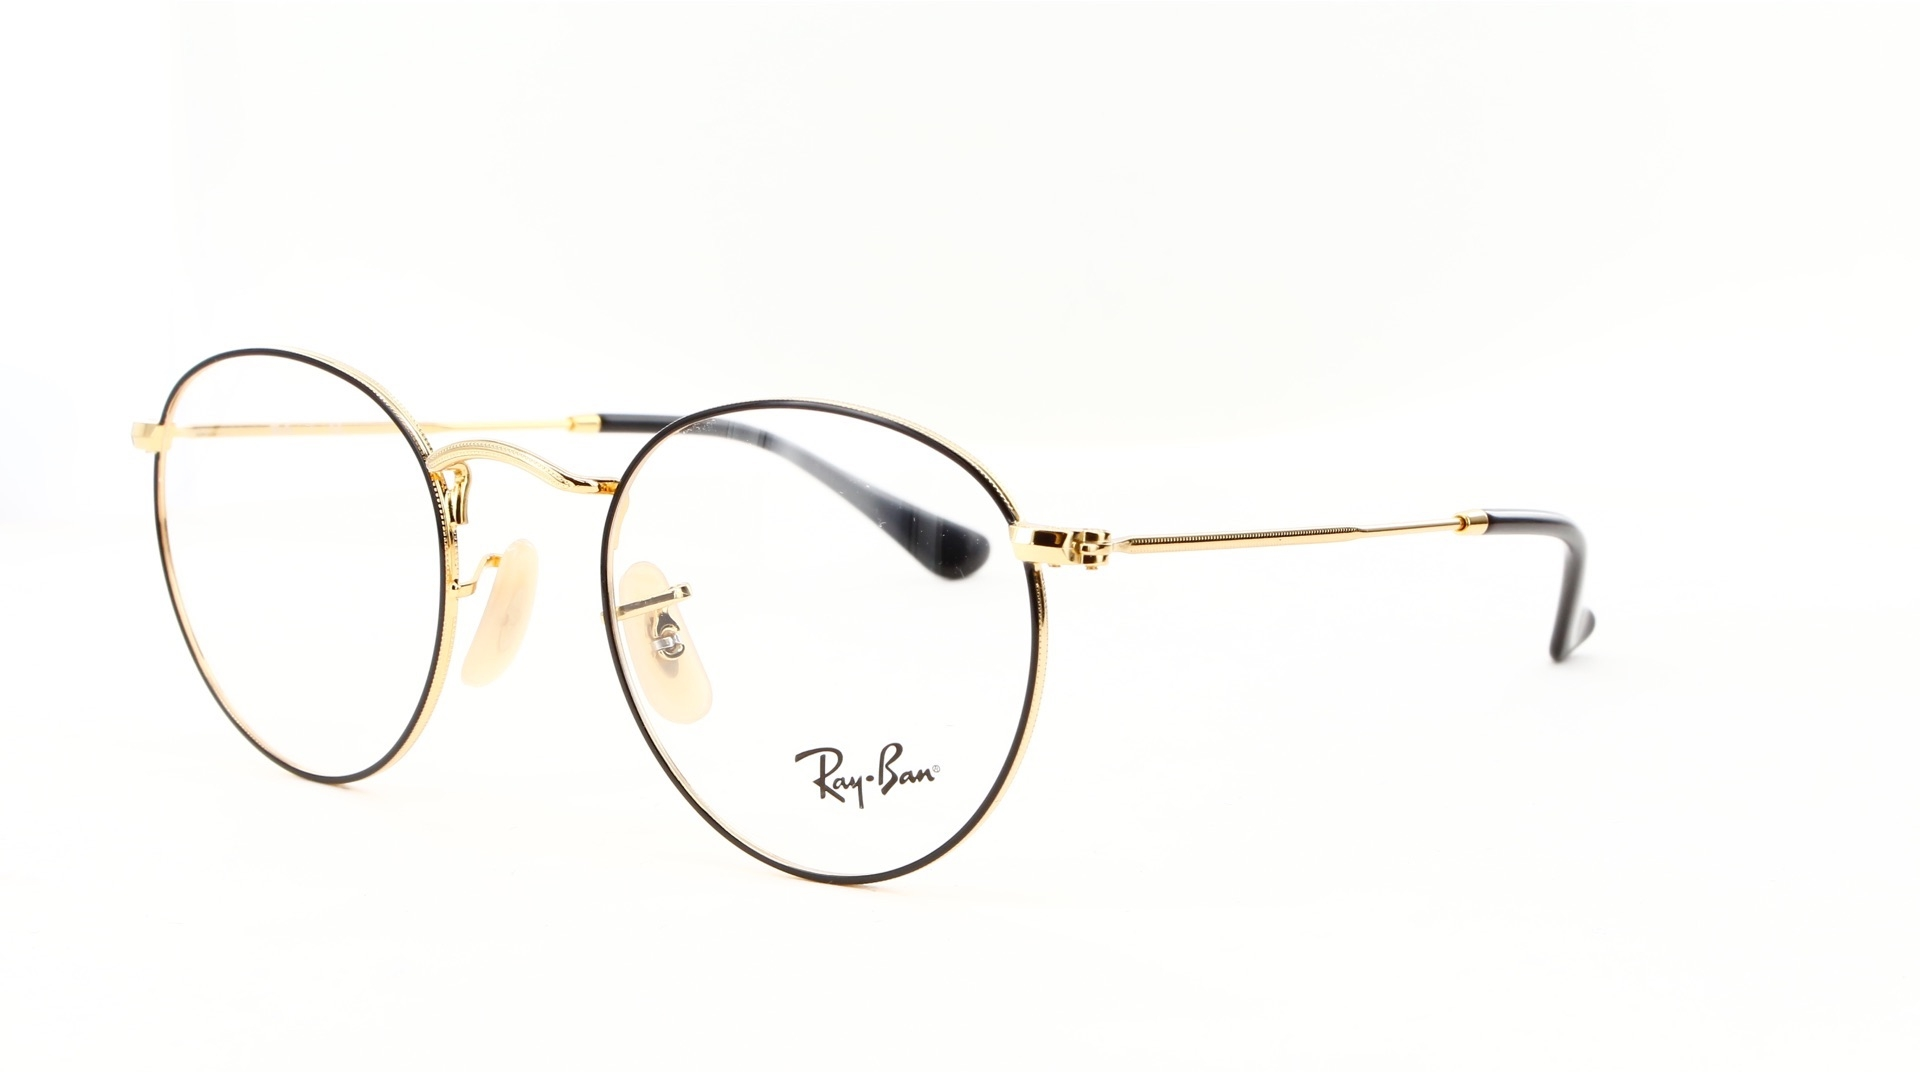 Ray-Ban - ref: 80626